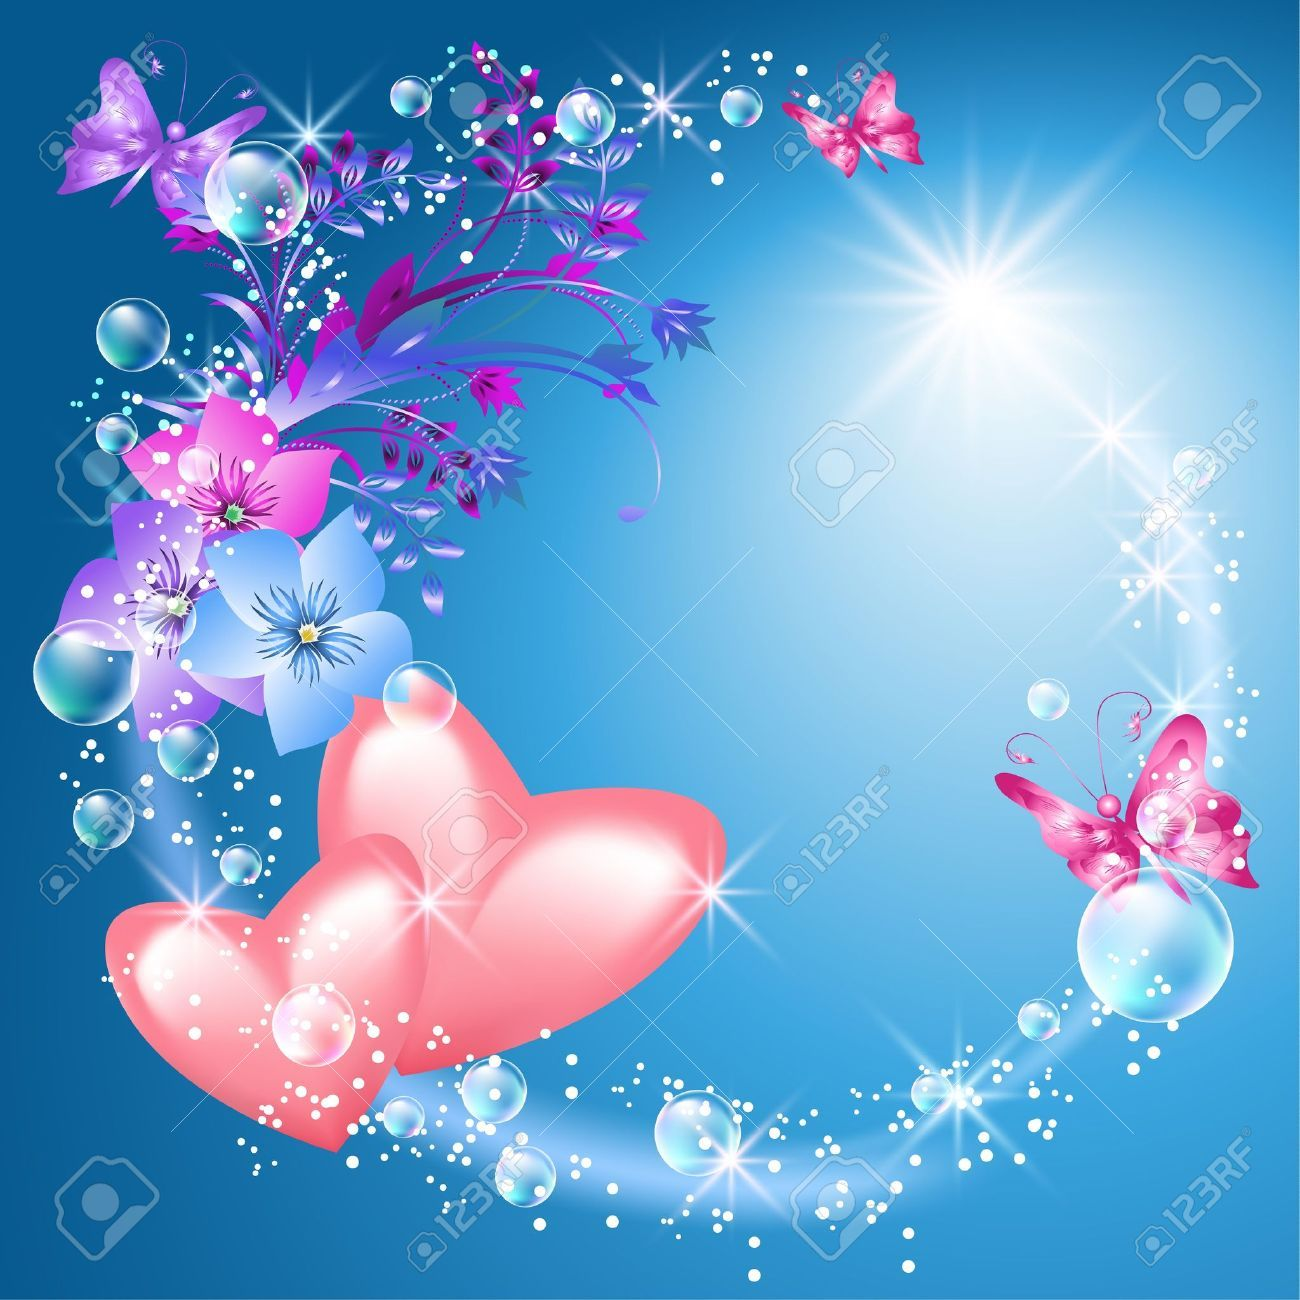 hearts and flowers background google search 1 hearts